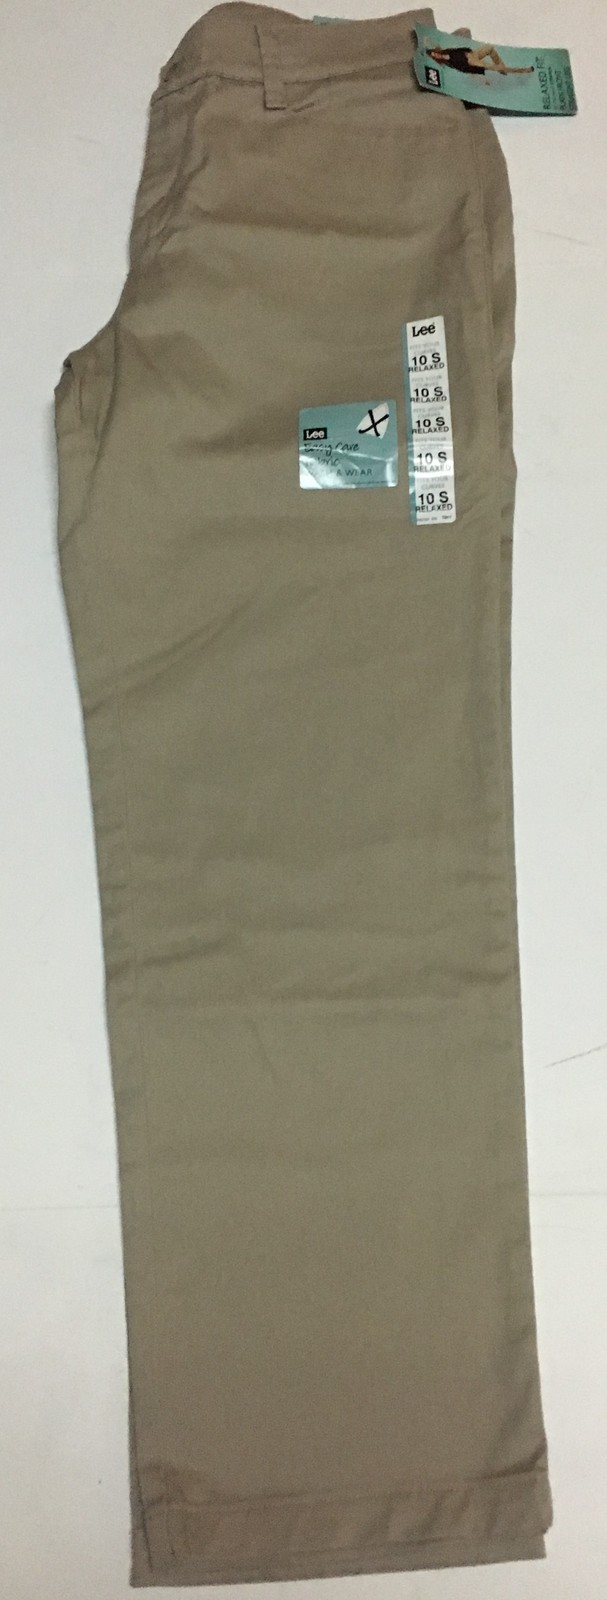 Lee Relaxed Fit Stretch Beige Pants Sz 10 Short Straight Leg NWT image 4